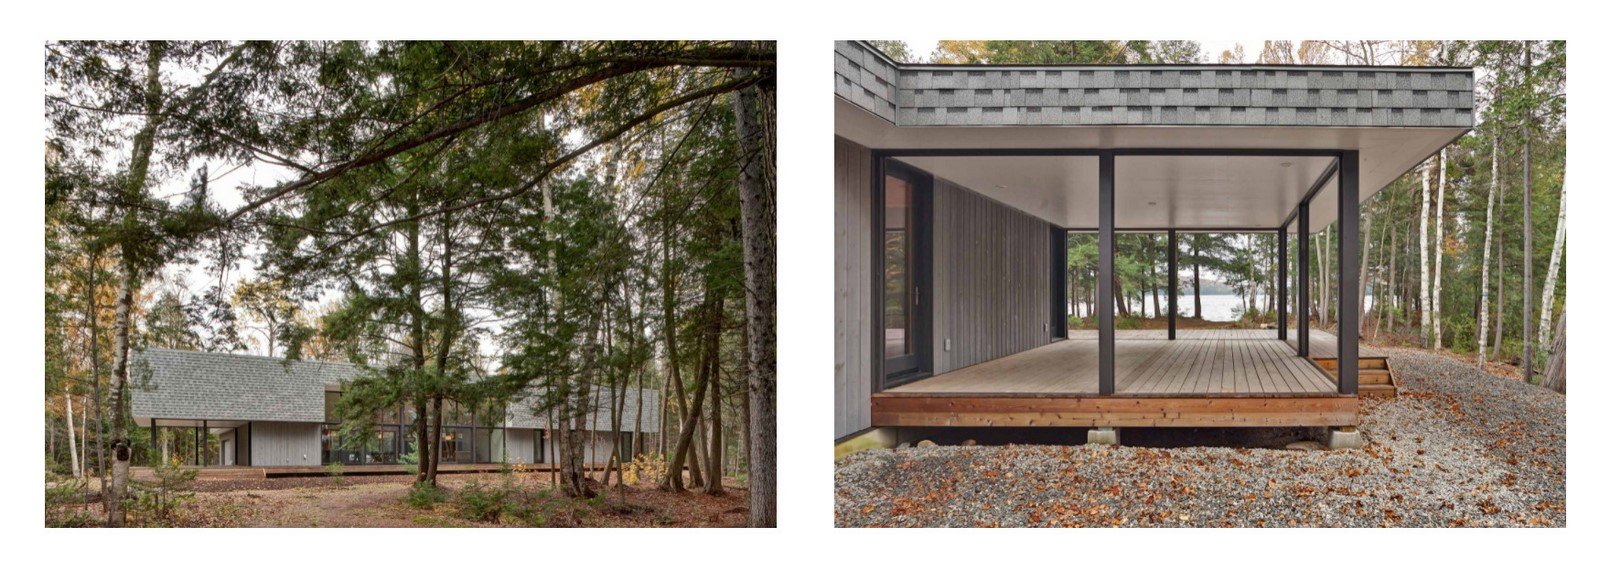 SvN Architects and Planners Inc.- 15 Iconic Projects - Sheet8